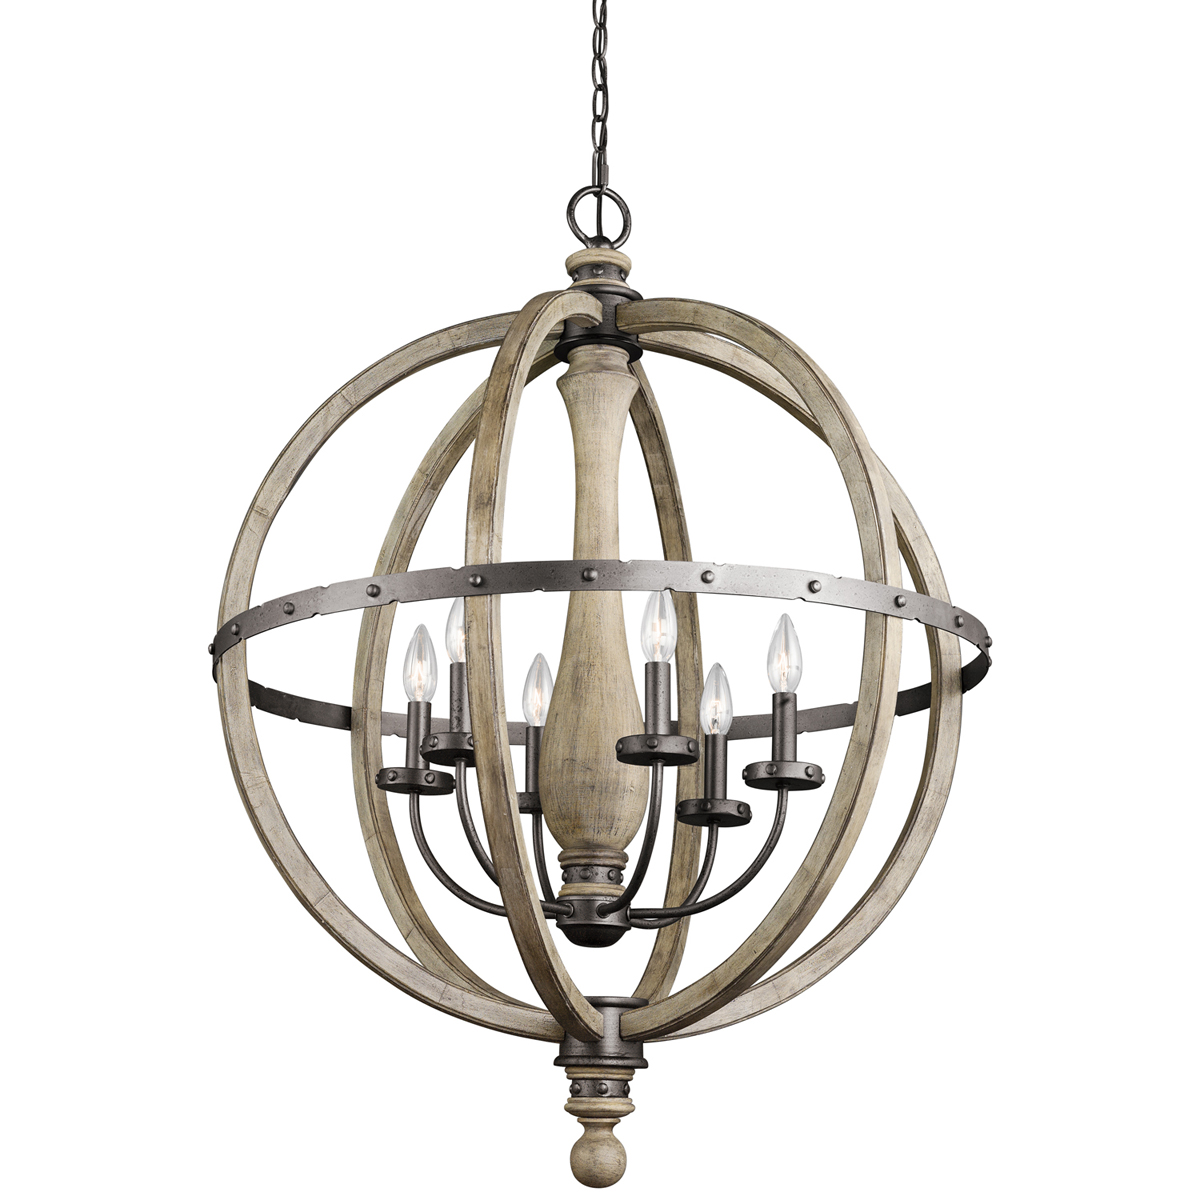 This Kichler Evan Single Tier Large 6 Light Chandelier 43327dag For